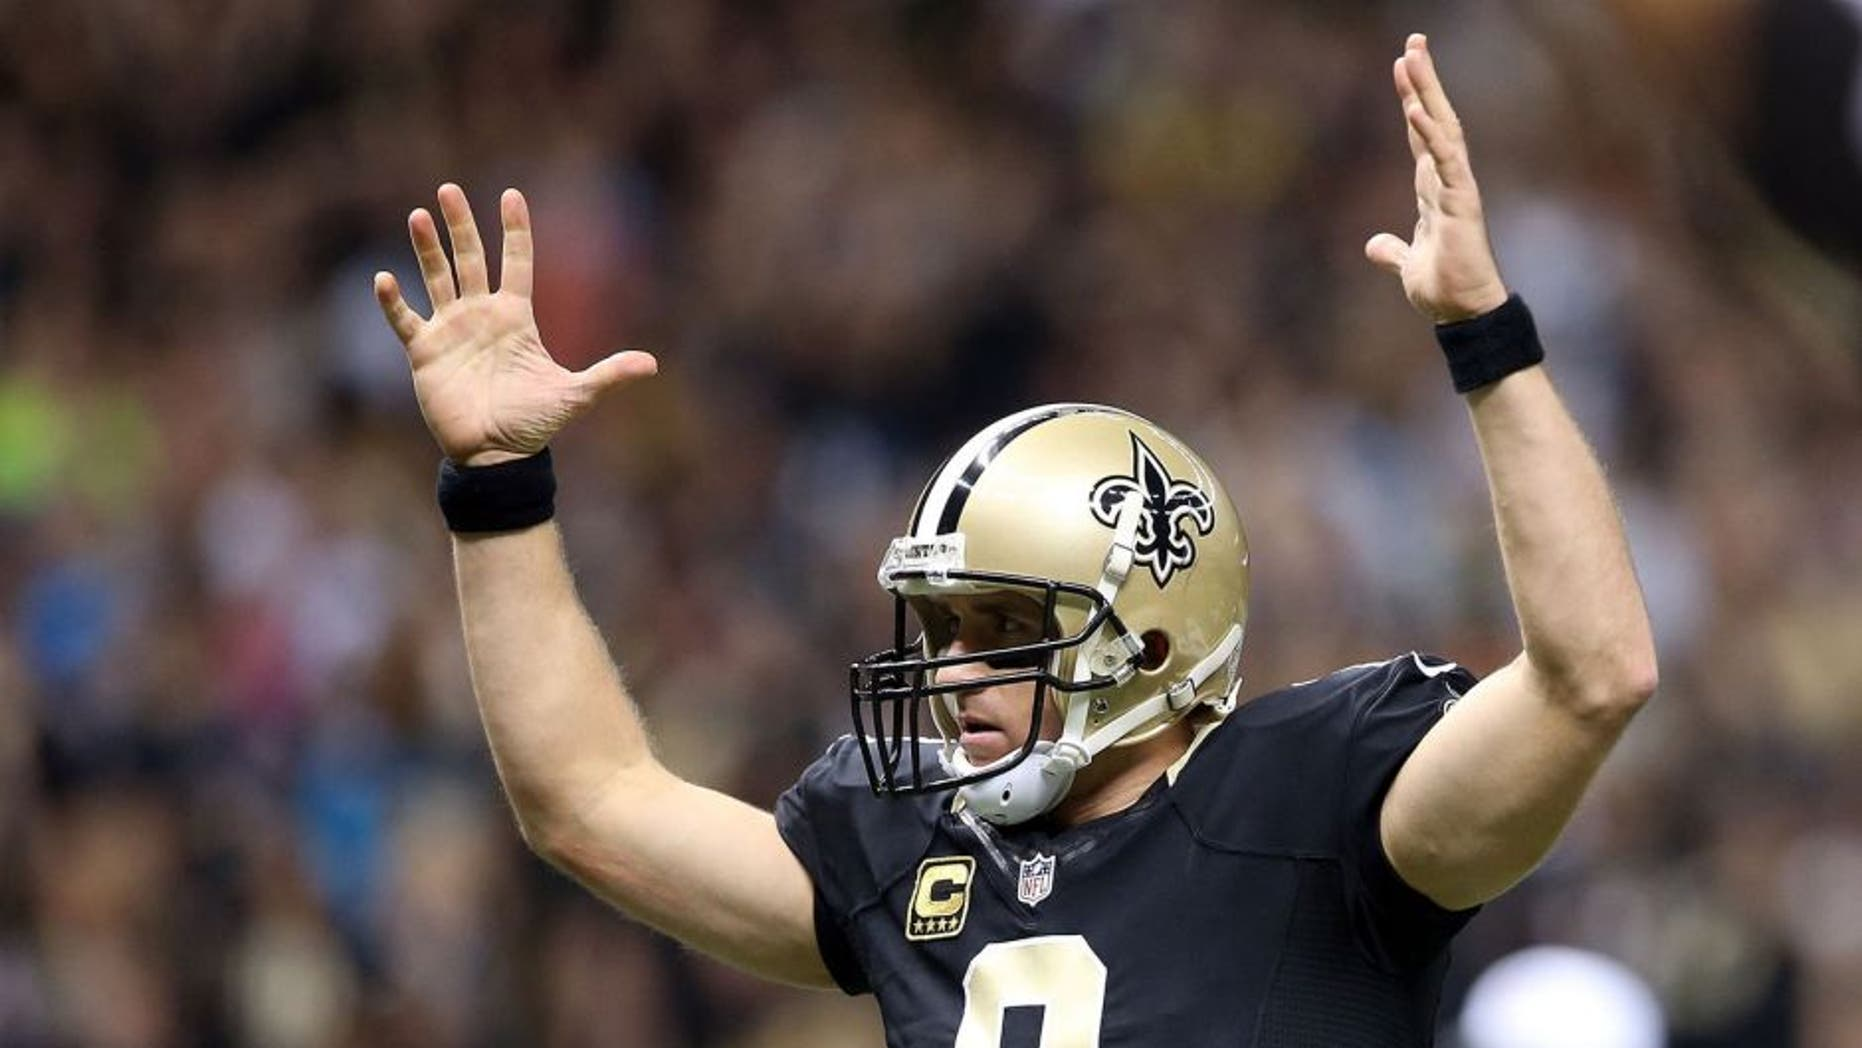 NEW ORLEANS, LA - DECEMBER 06: Drew Brees #9 of the New Orleans Saints celebrates after his team makes a 2 point conversion against the Carolina Panthers at Mercedes-Benz Superdome on December 6, 2015 in New Orleans, Louisiana. (Photo by Sean Gardner/Getty Images)